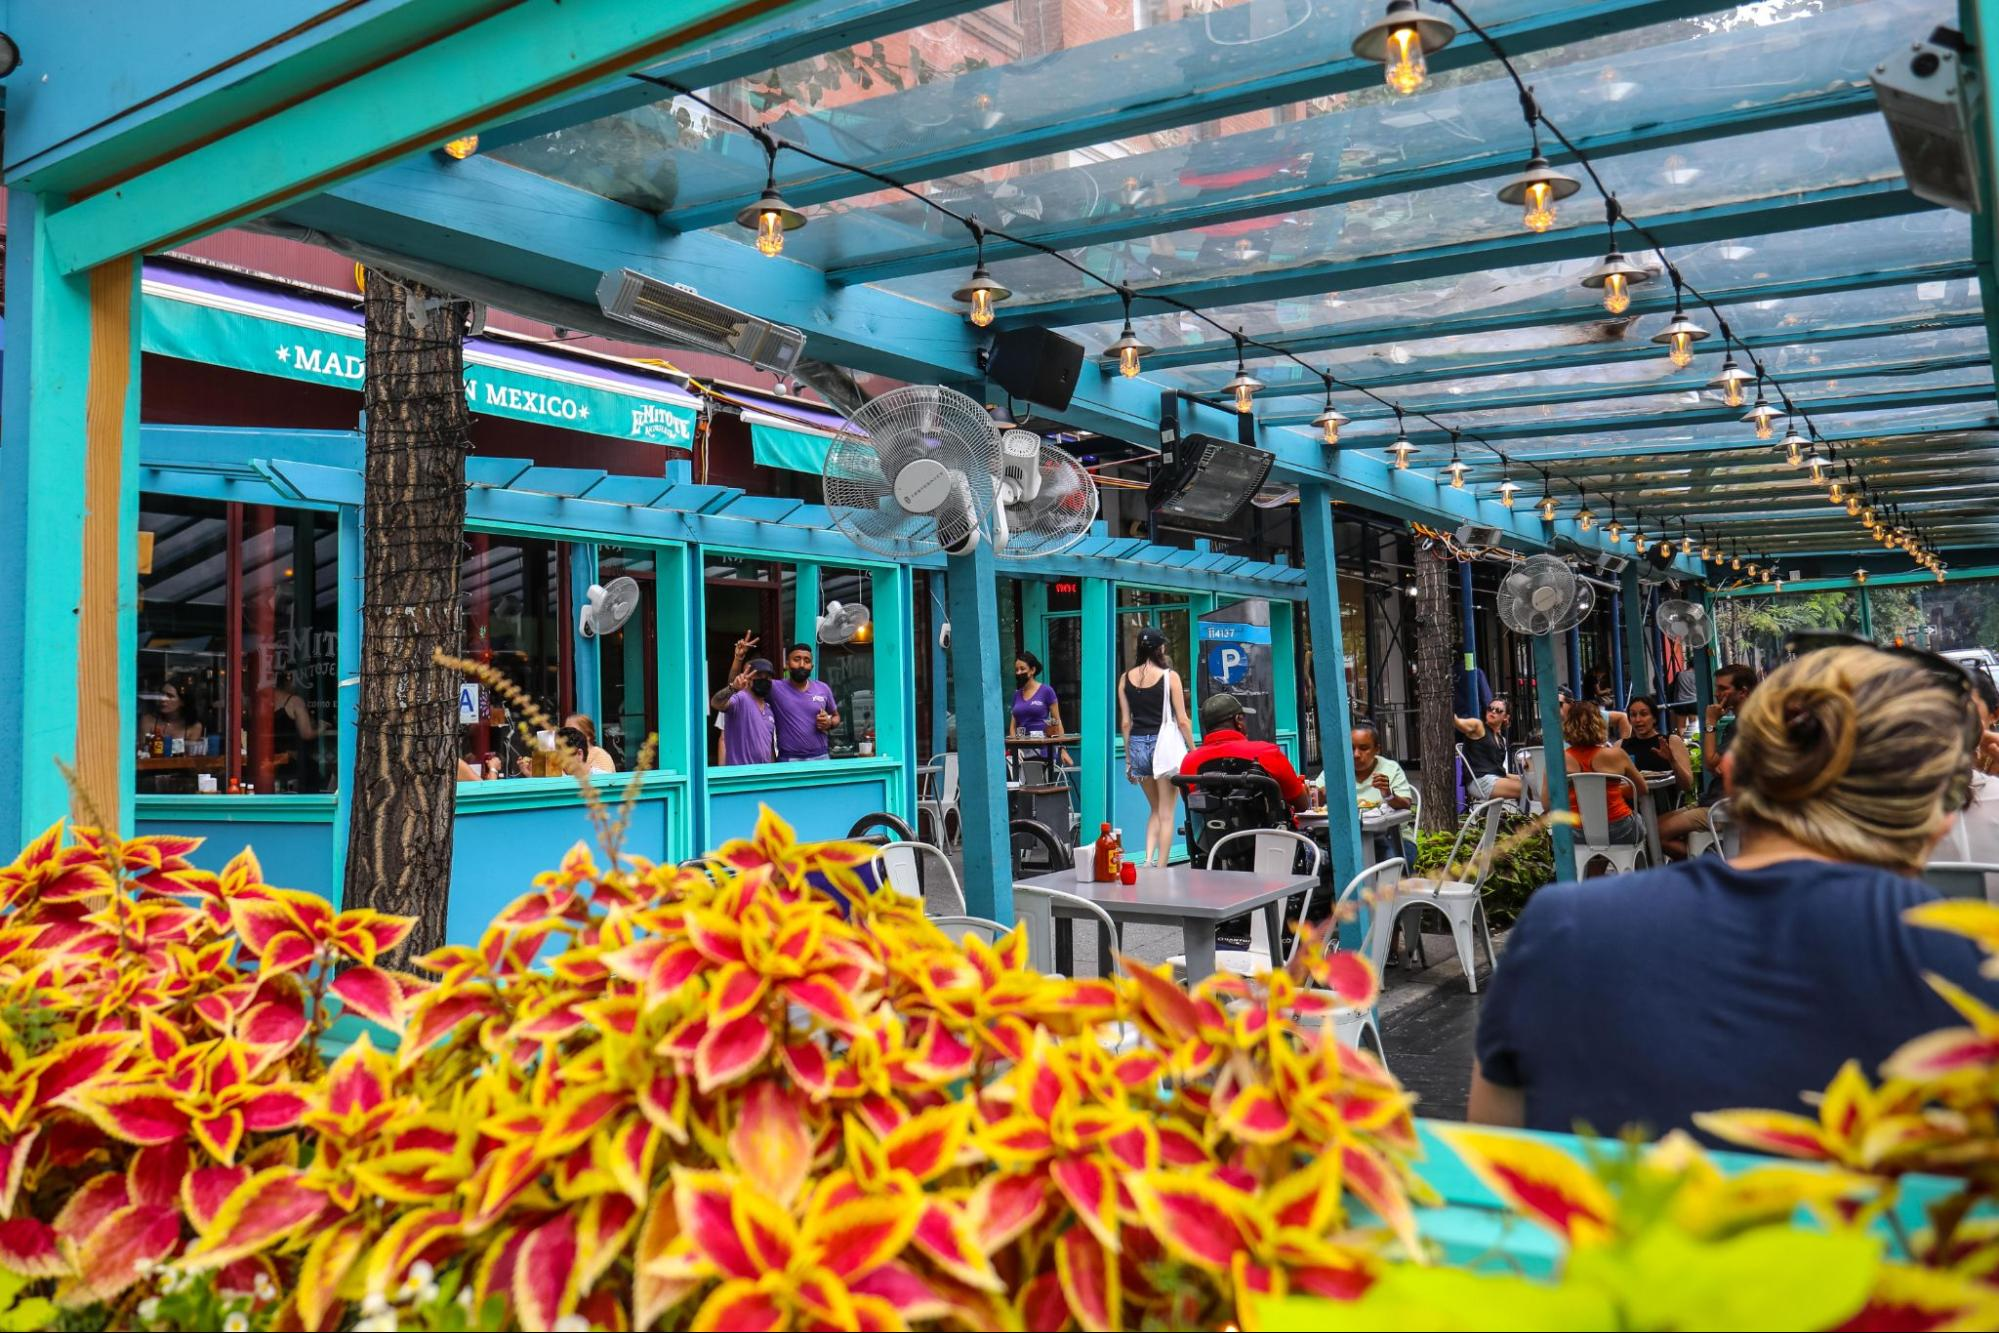 teal outdoor seating area with diners enjoying food